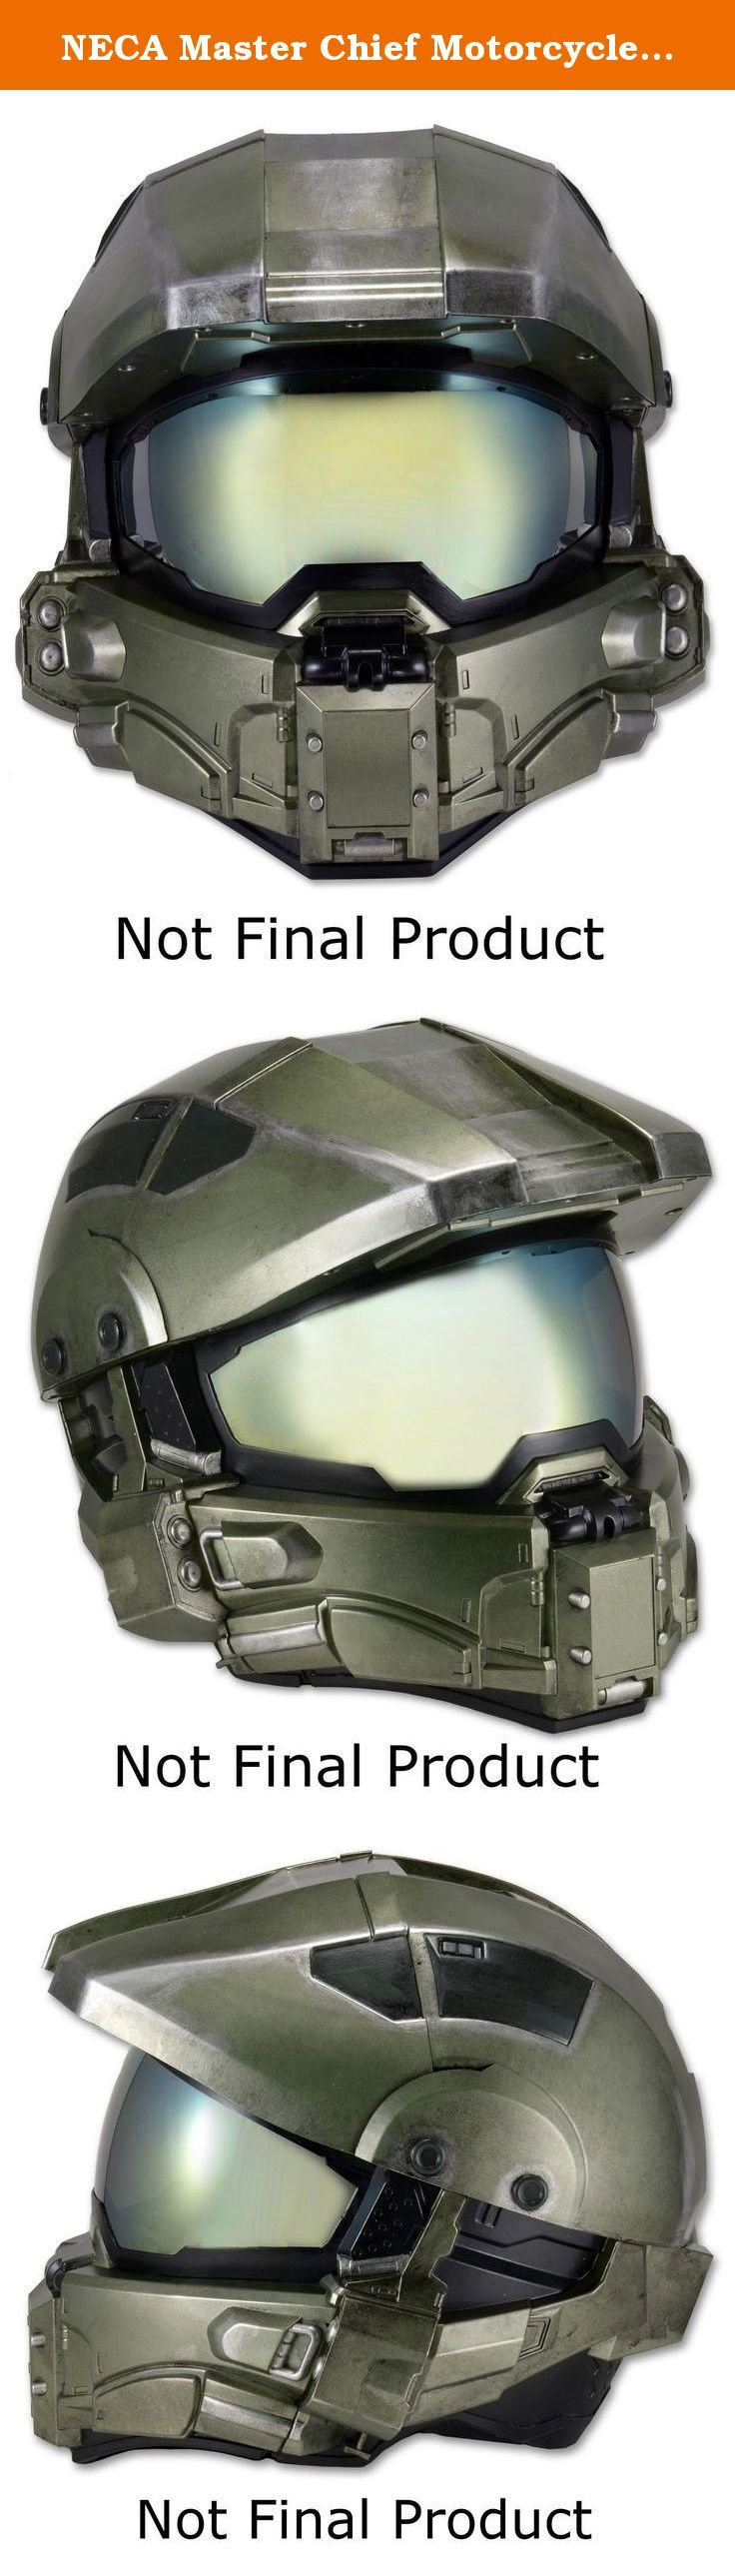 NECA Master Chief Motorcycle Helmet - X-Large. From the award-winning Halo video games, this detailed replica of Master Chief's headgear is also a DOT-approved modular motorcycle helmet! Master Chief Petty Officer John-117 is a central figure at the forefront of the war against the Covenant and rumored to be the lone survivor of the declassified SPARTAN-II project. This limited edition helmet has a convenient modular design with glove-friendly opening mechanism and full list of features....